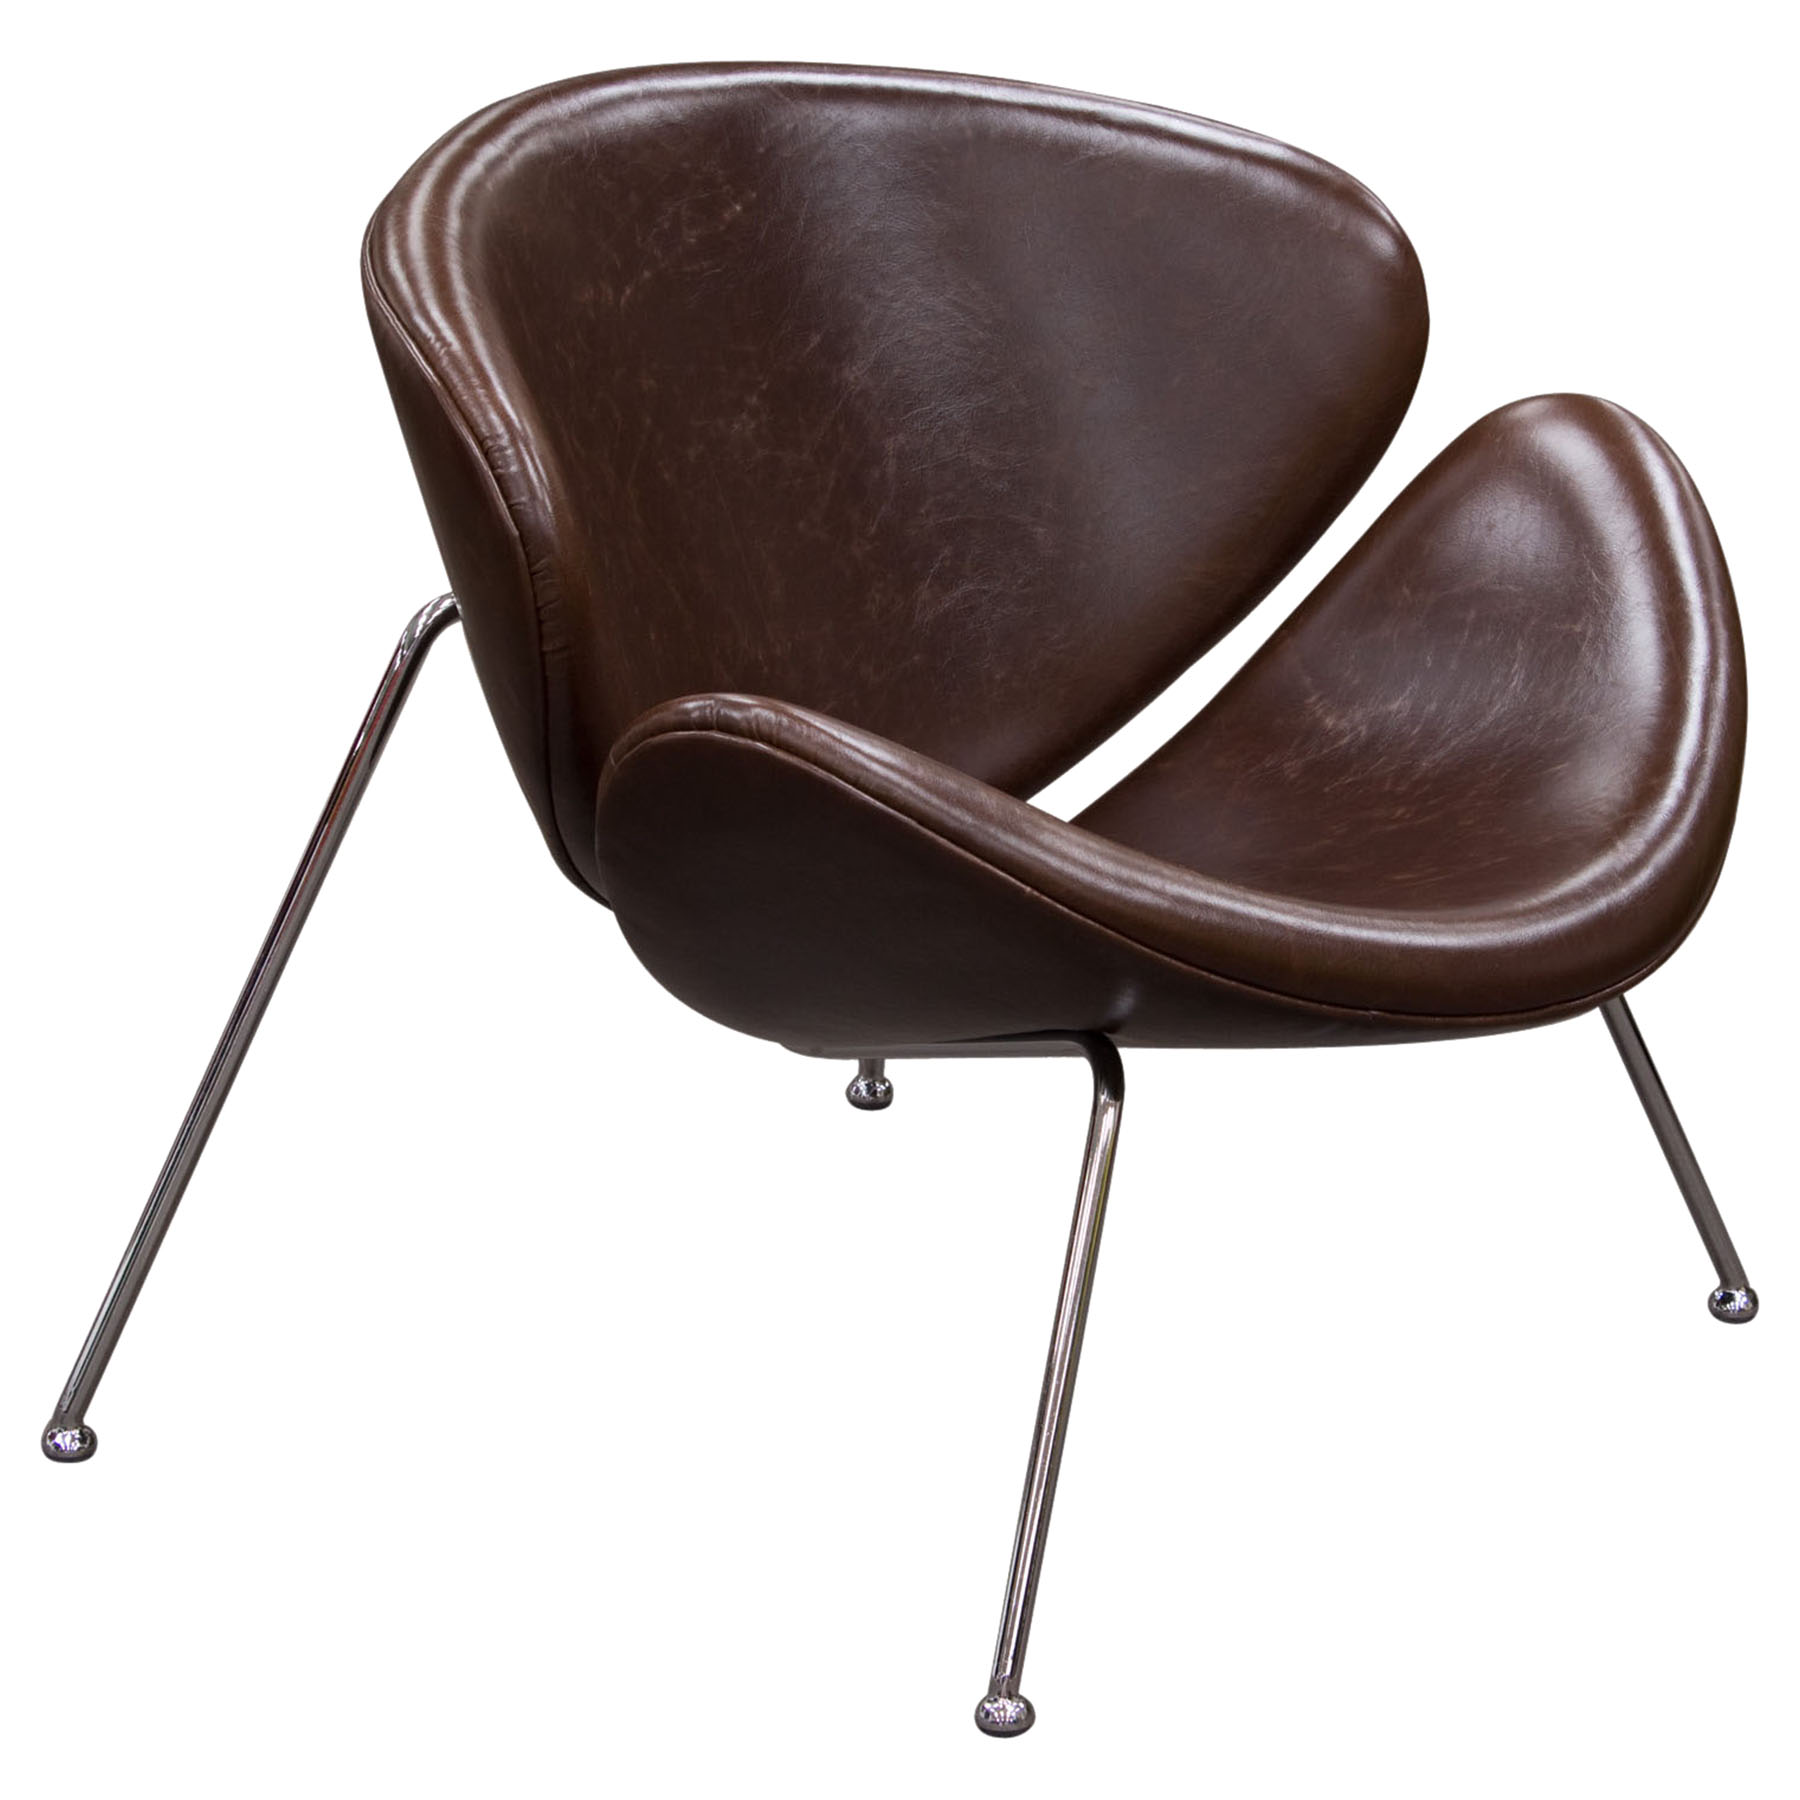 Roxy Accent Chair - Vintage Brown, Chrome